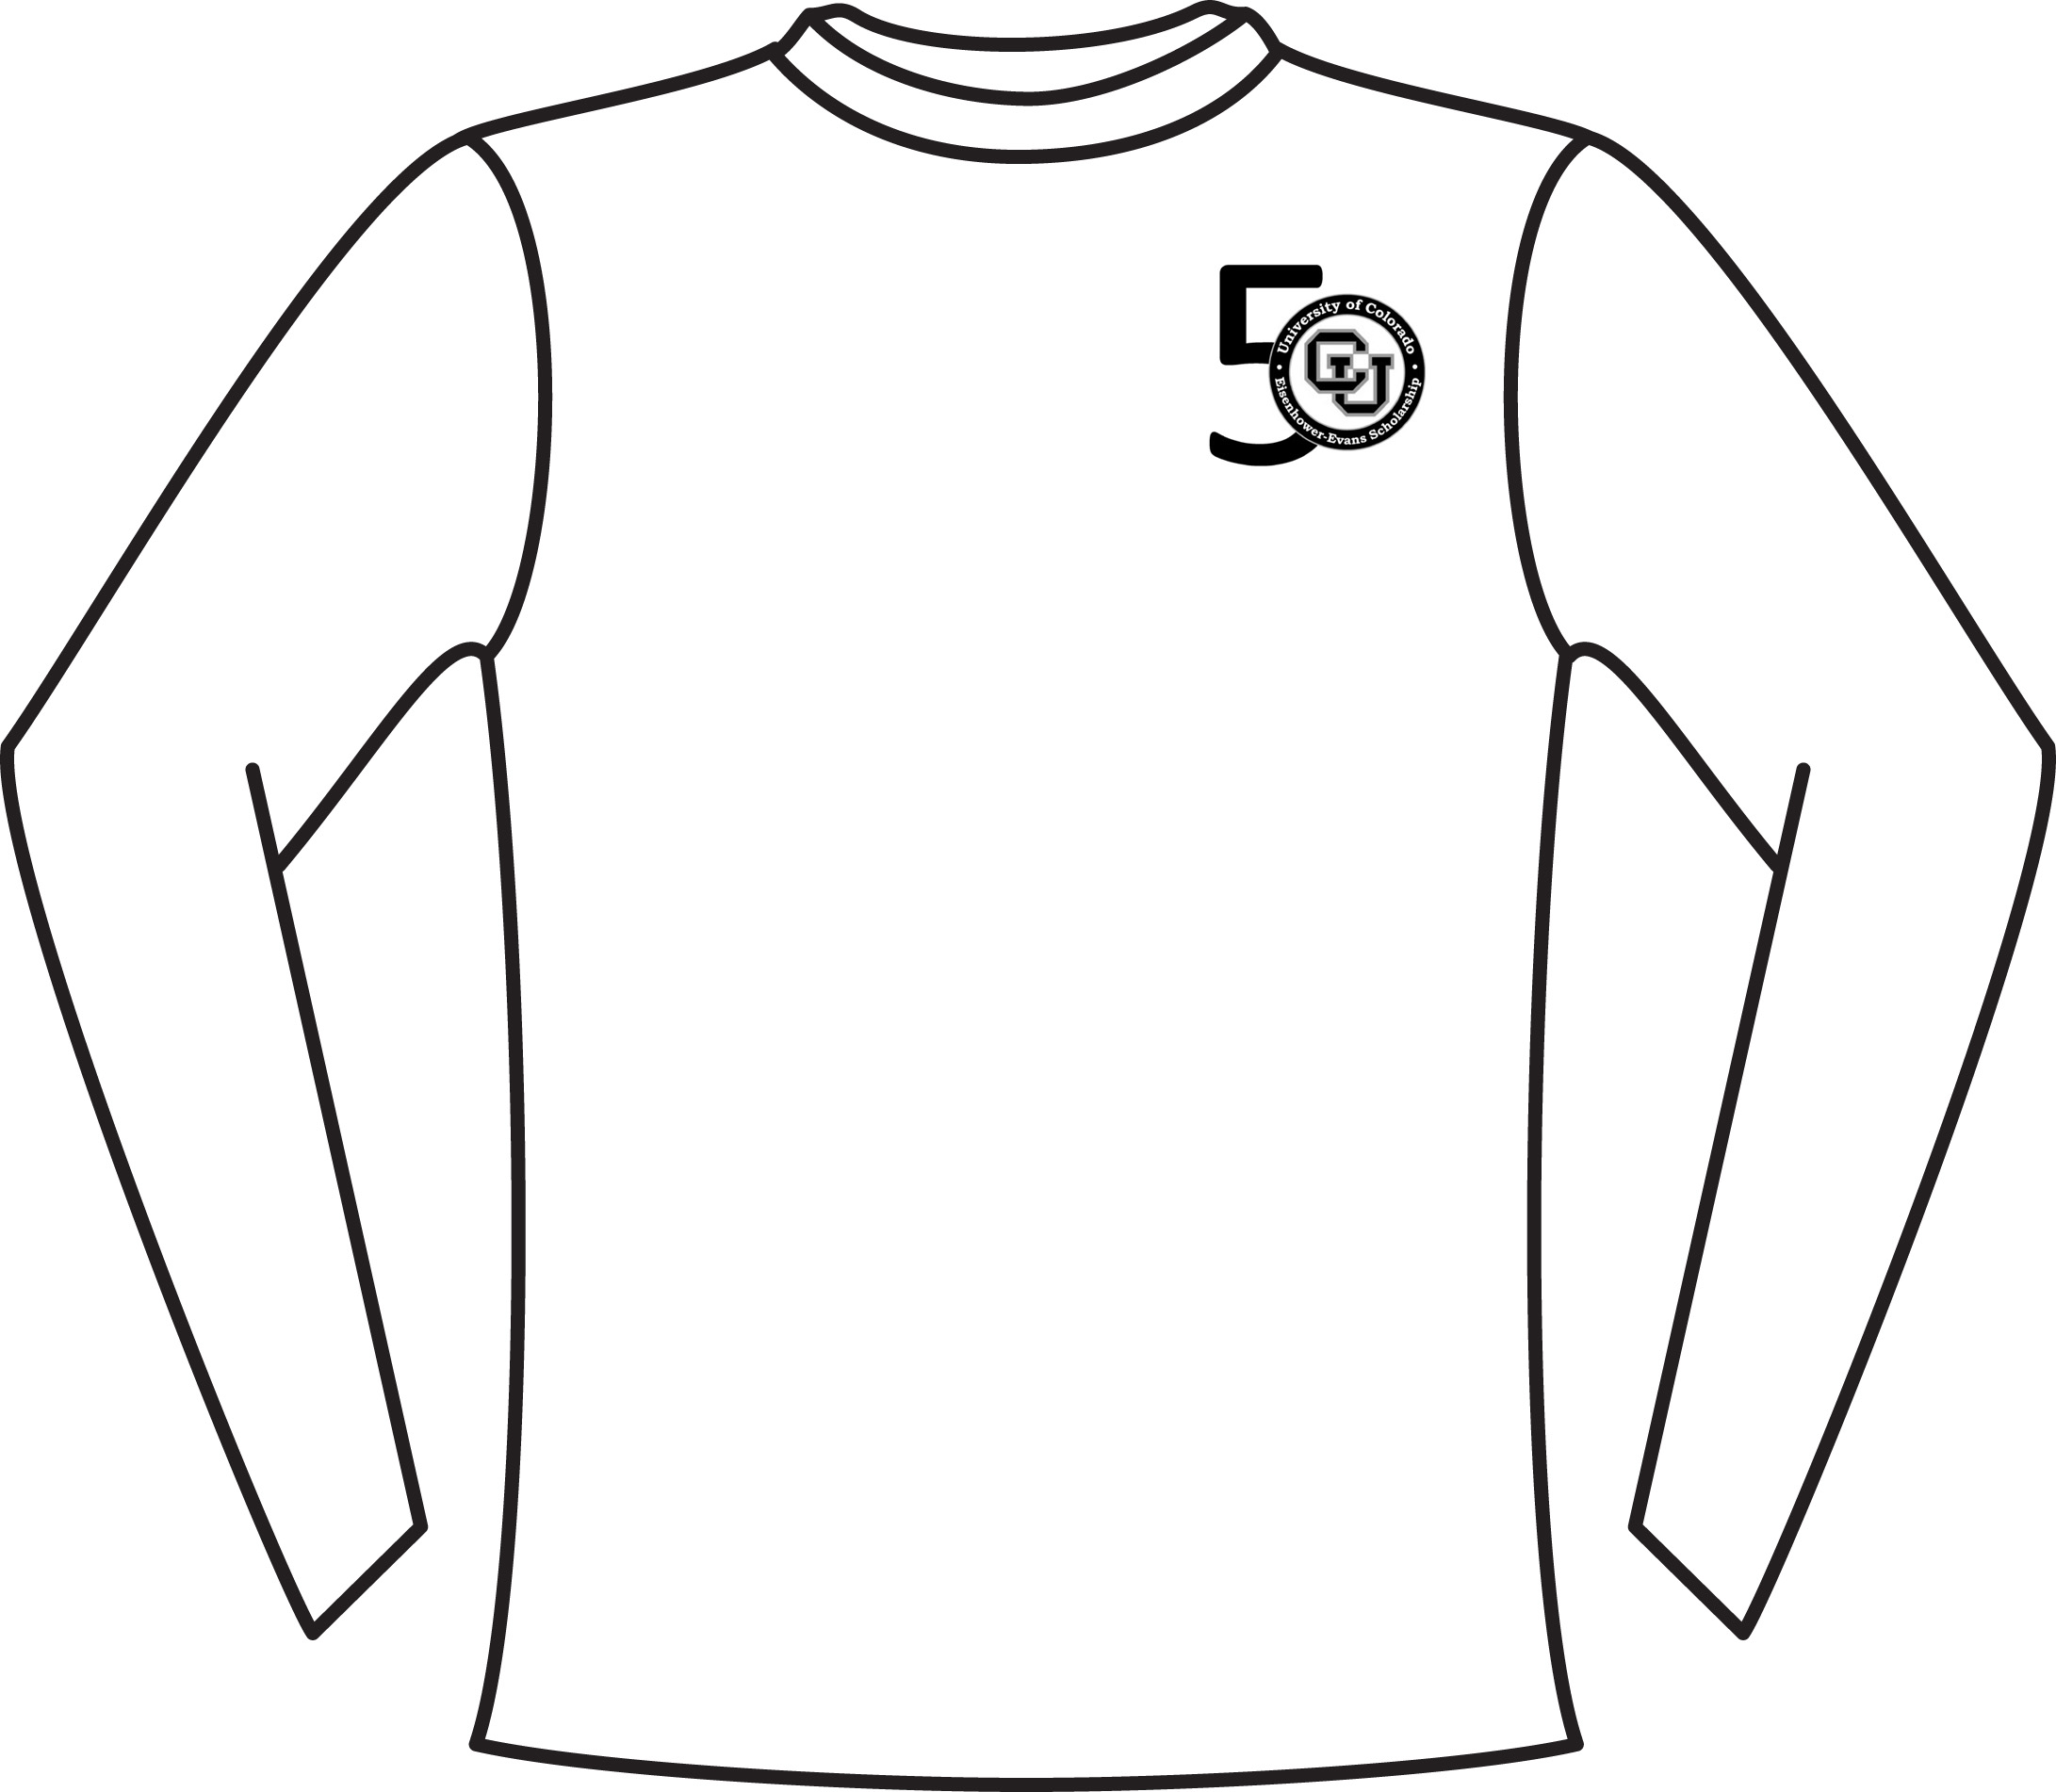 Sketch Long Sleeve T Shirt Coloring Pages